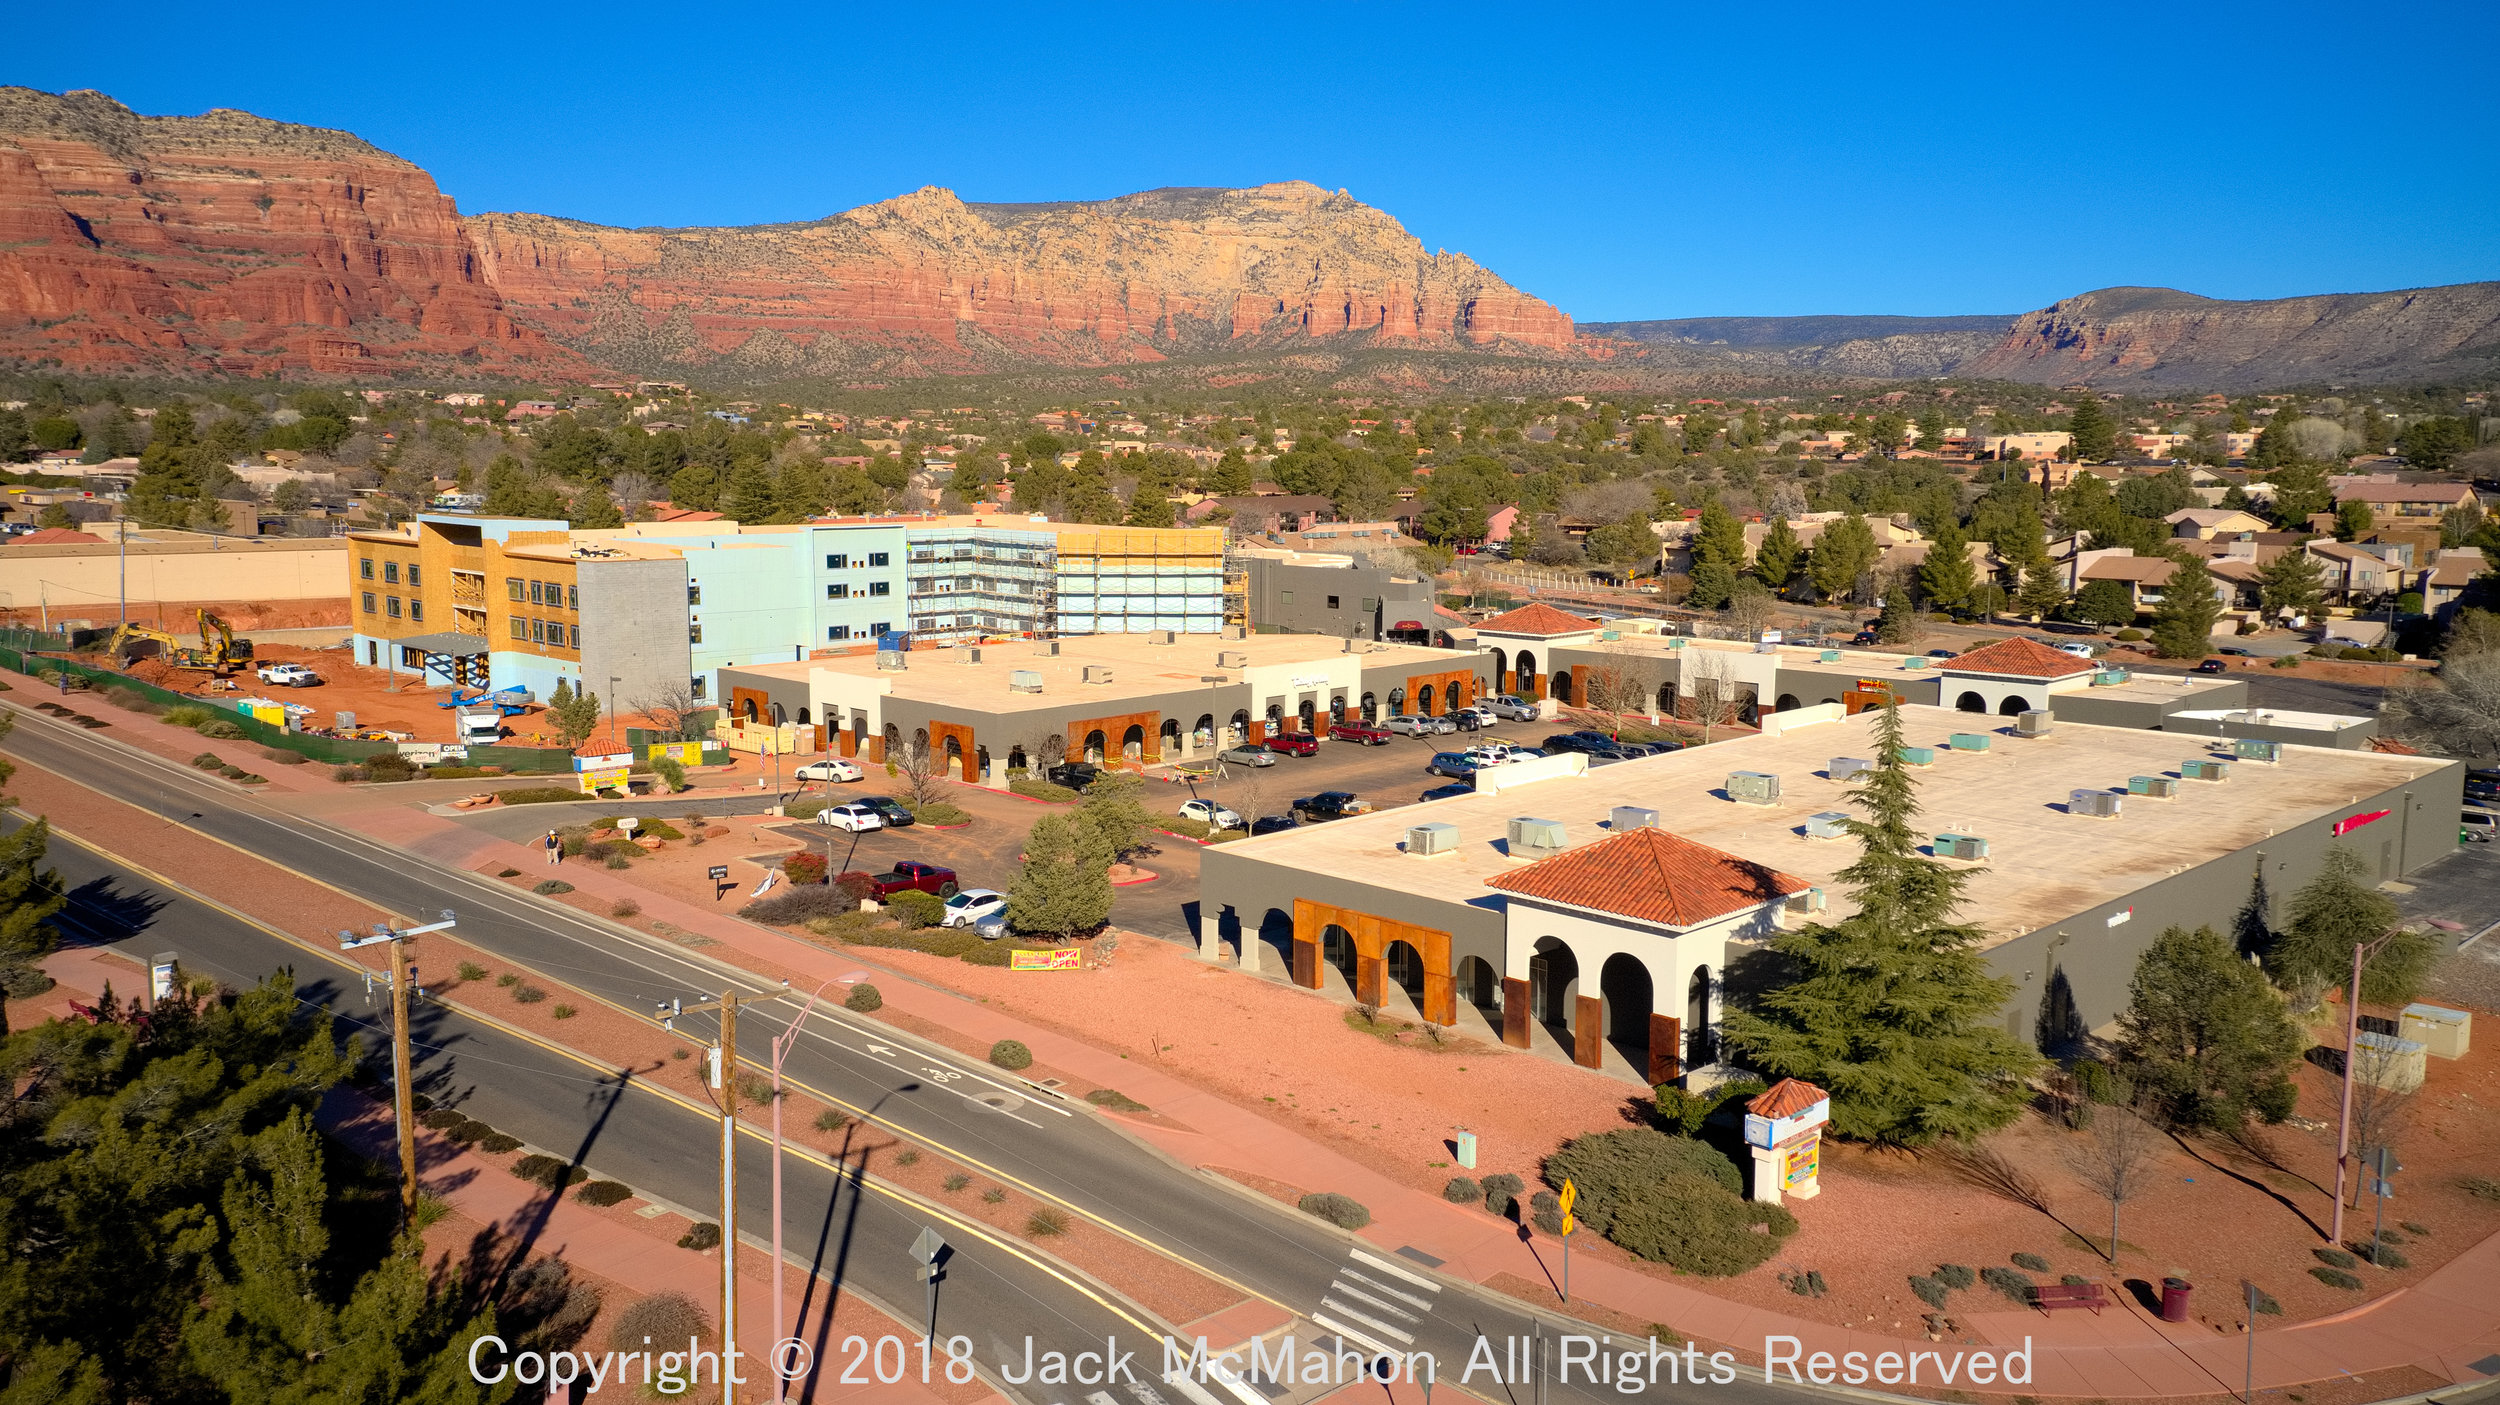 SEDONA VISTA VILLAGE (FORMER FACTORY OUTLET MALL)    6601 SR 179 - SEDONA, AZ